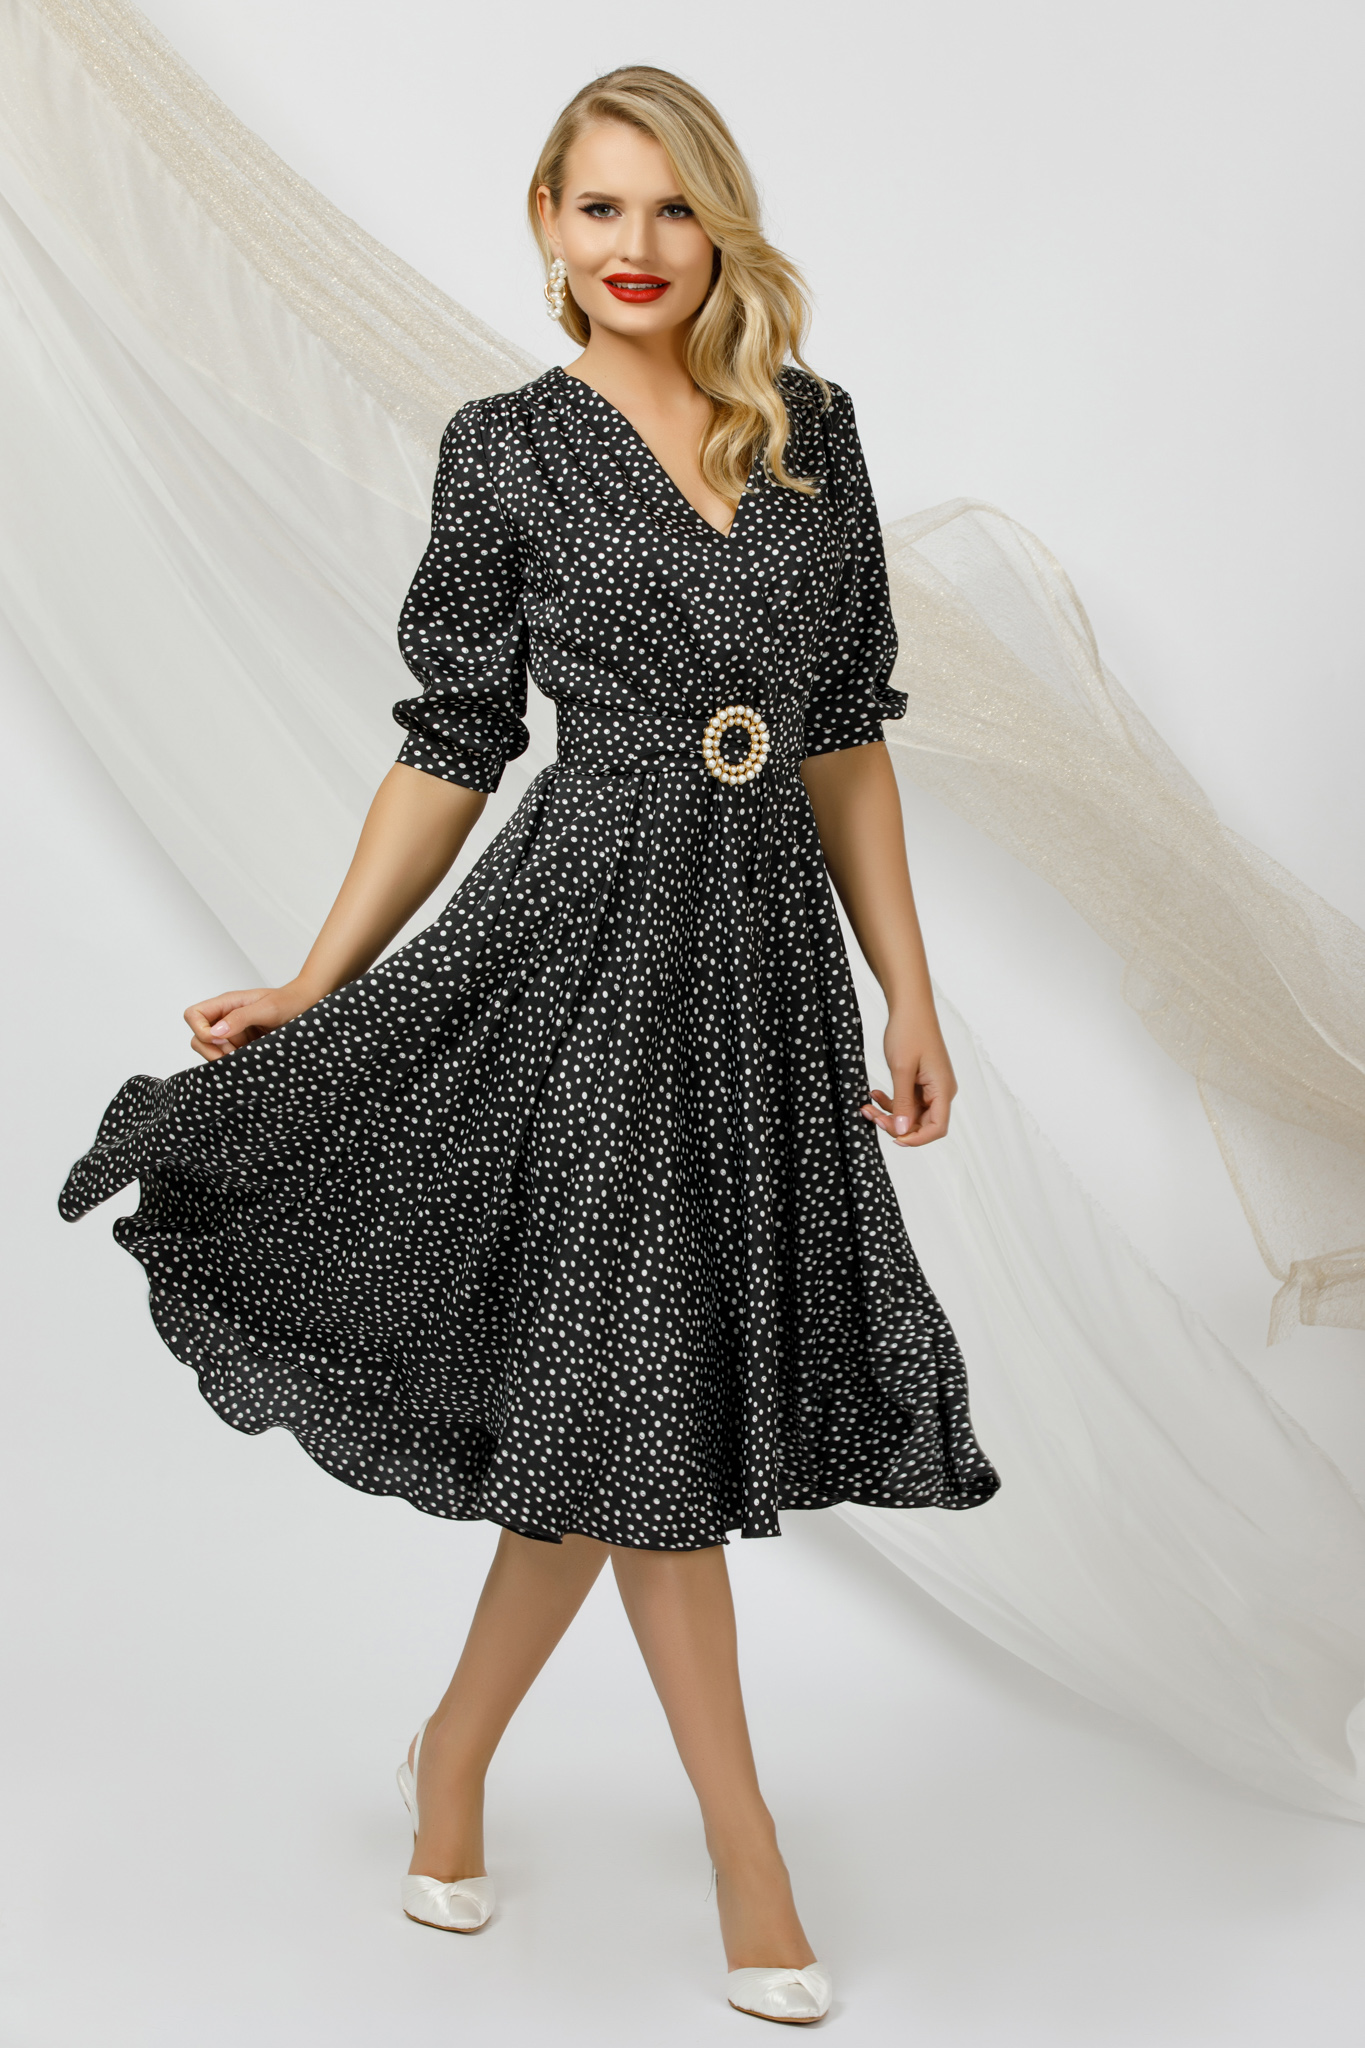 Dress midi cloche occasional airy fabric from satin fabric texture dots print metallic buckle